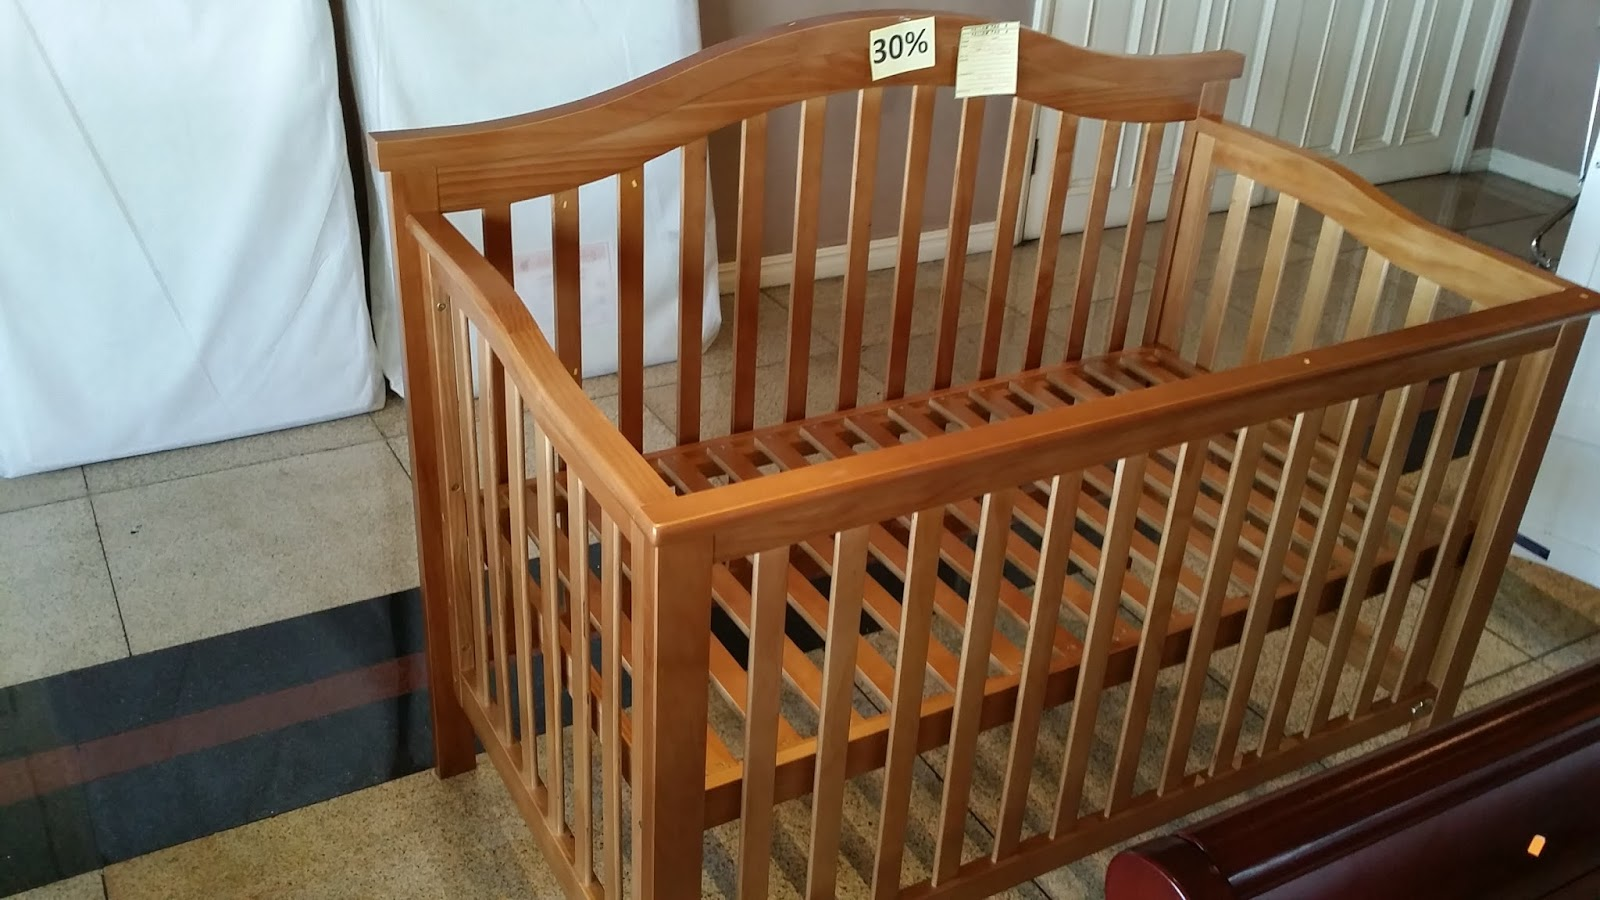 Wooden crib for sale makati - We Also Decided To Get The Mattress From Cuddlebug Even Though We Could Have Gotten A Much Cheaper Uratex Mattress Because What They Have Conforms To The